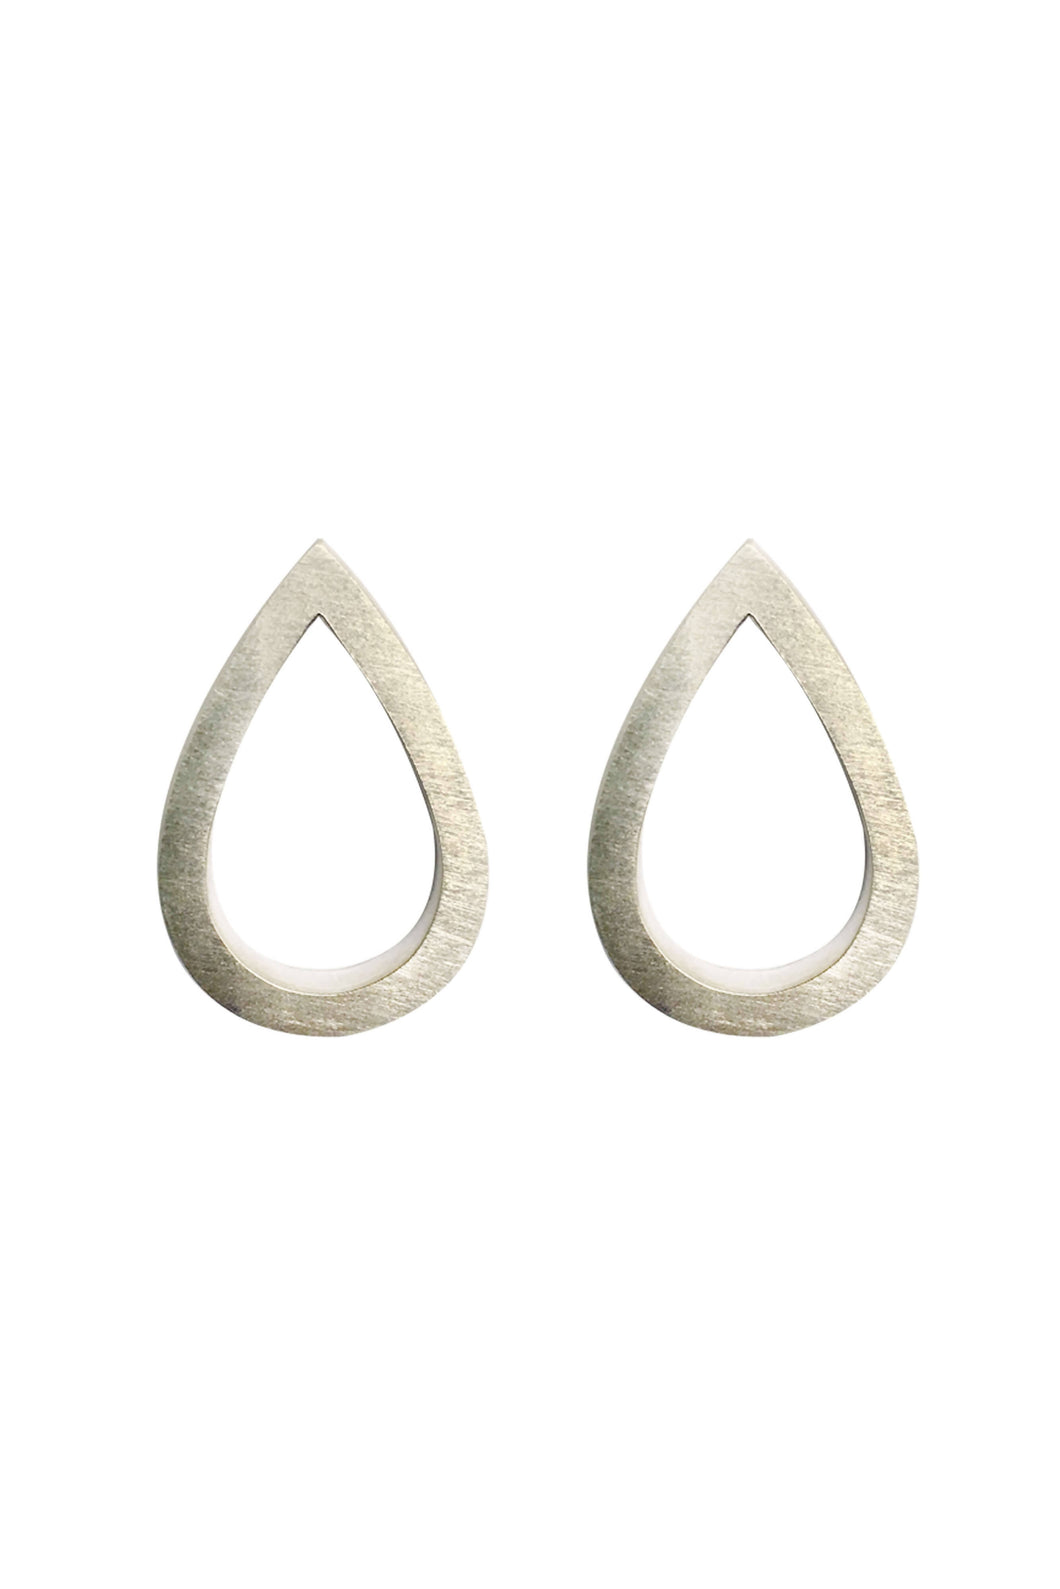 Cut out earrings